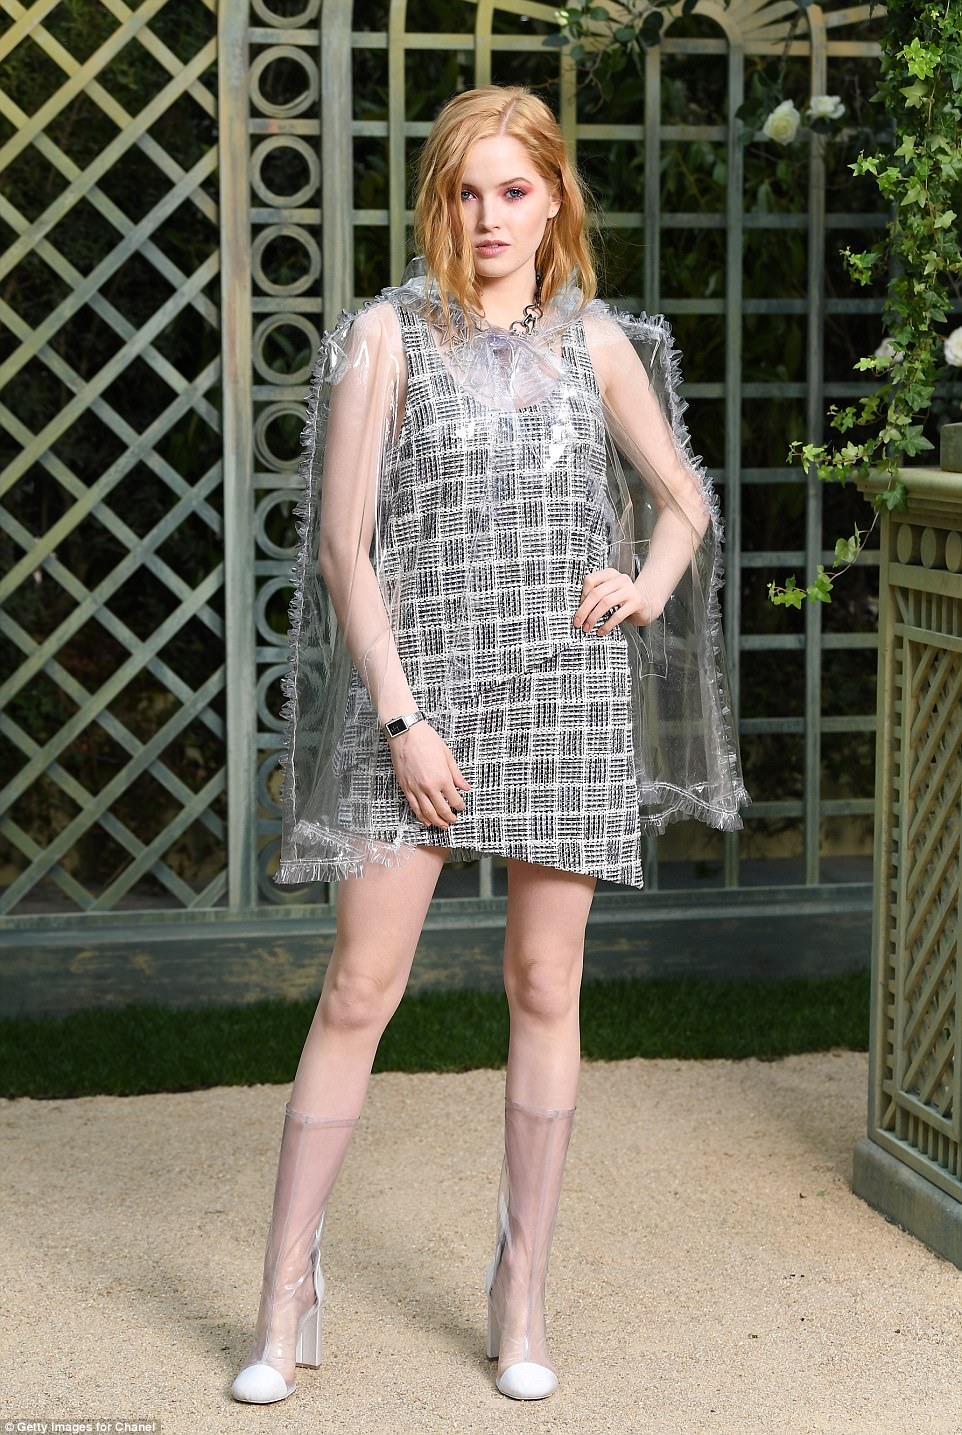 Wow factor: Ellie Bamber showed off her fashion credentials in a perspex dress and boots